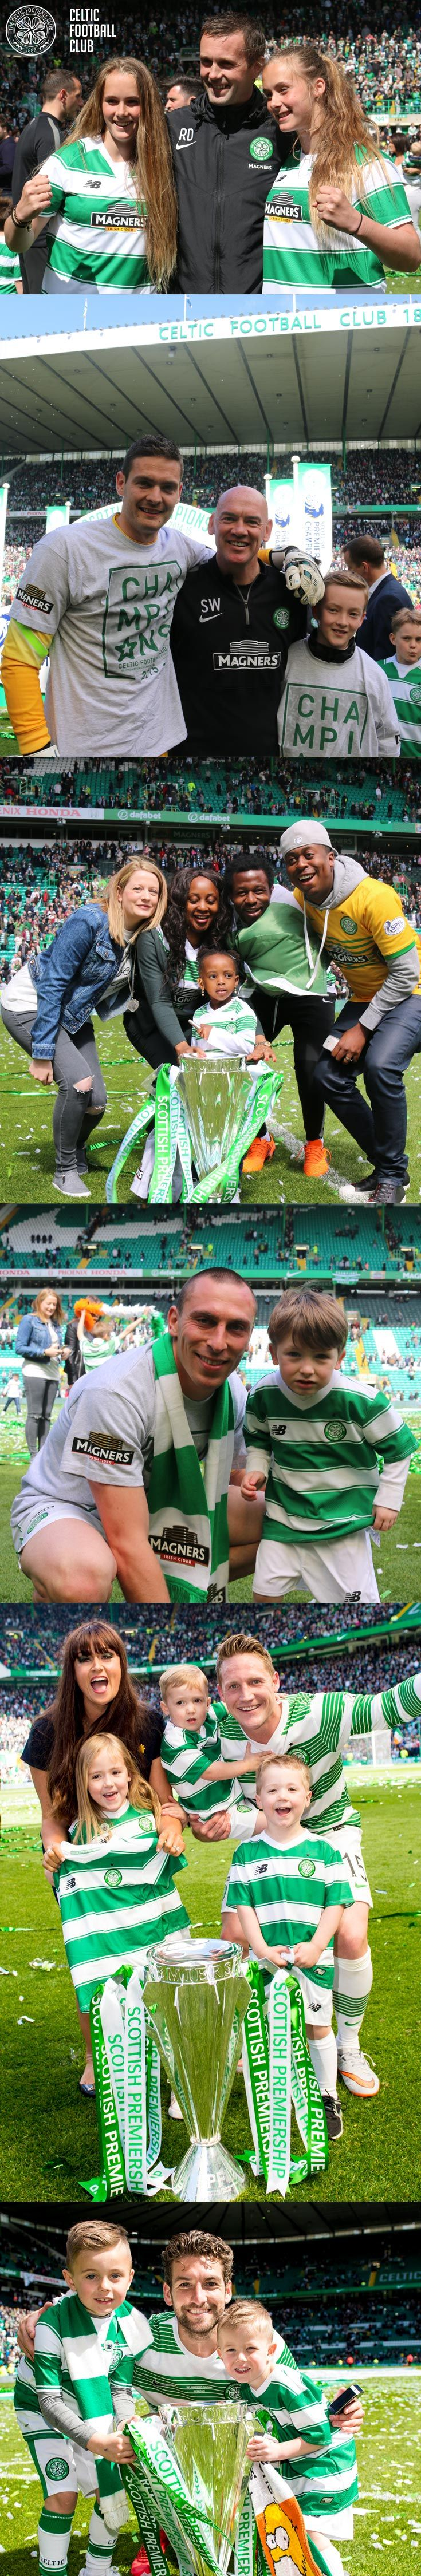 Celtic celebrate the SPFL Scottish Premiership win with their families on the  Celtic Park pitch.